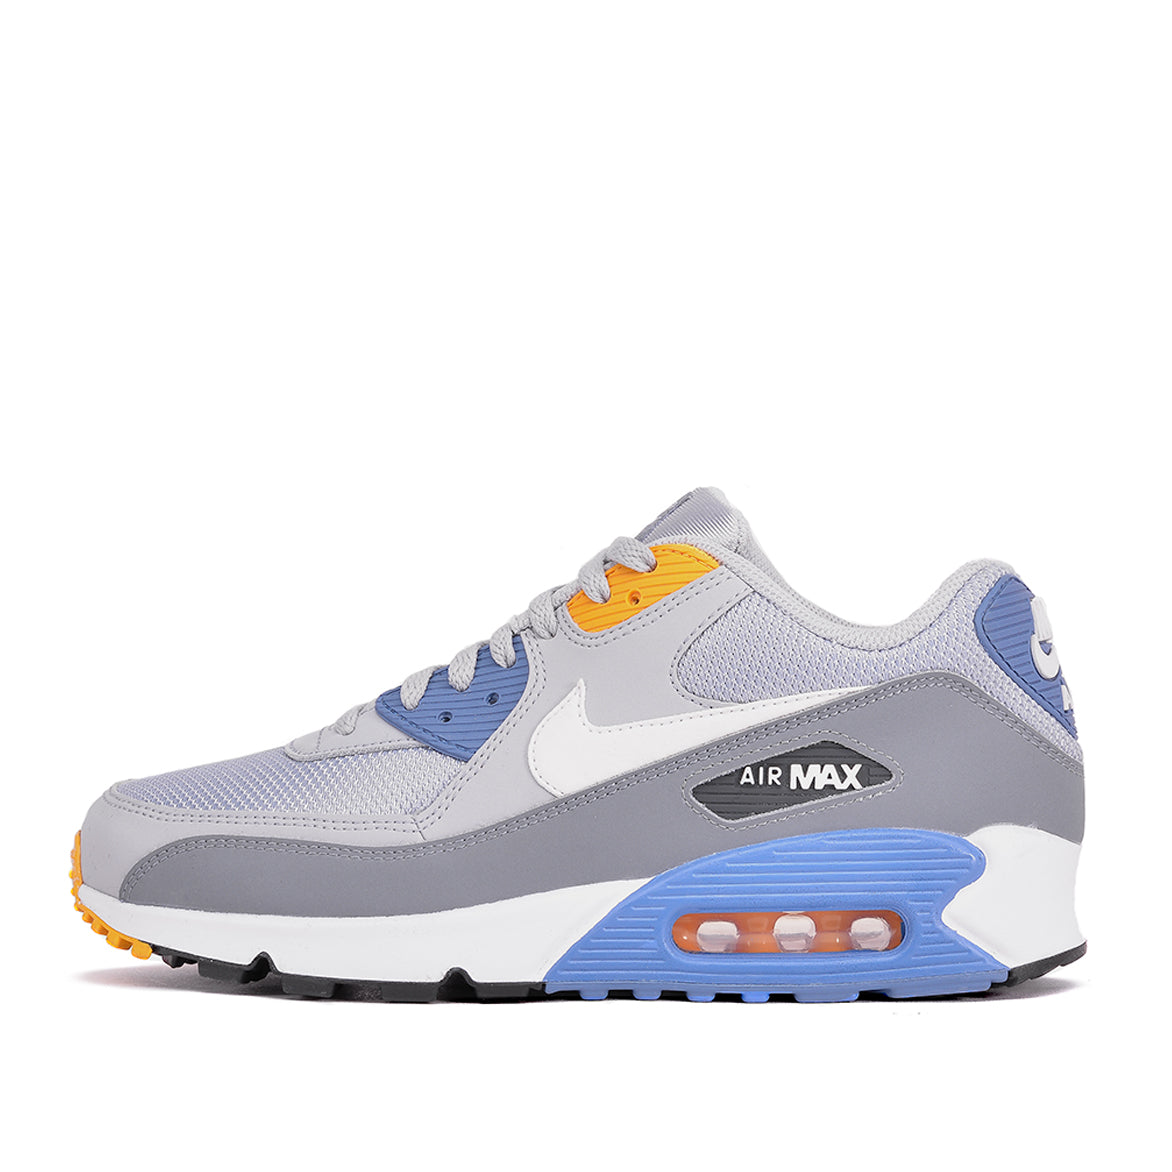 Nike Air max 90 leather wolf grey white indigo storm grey